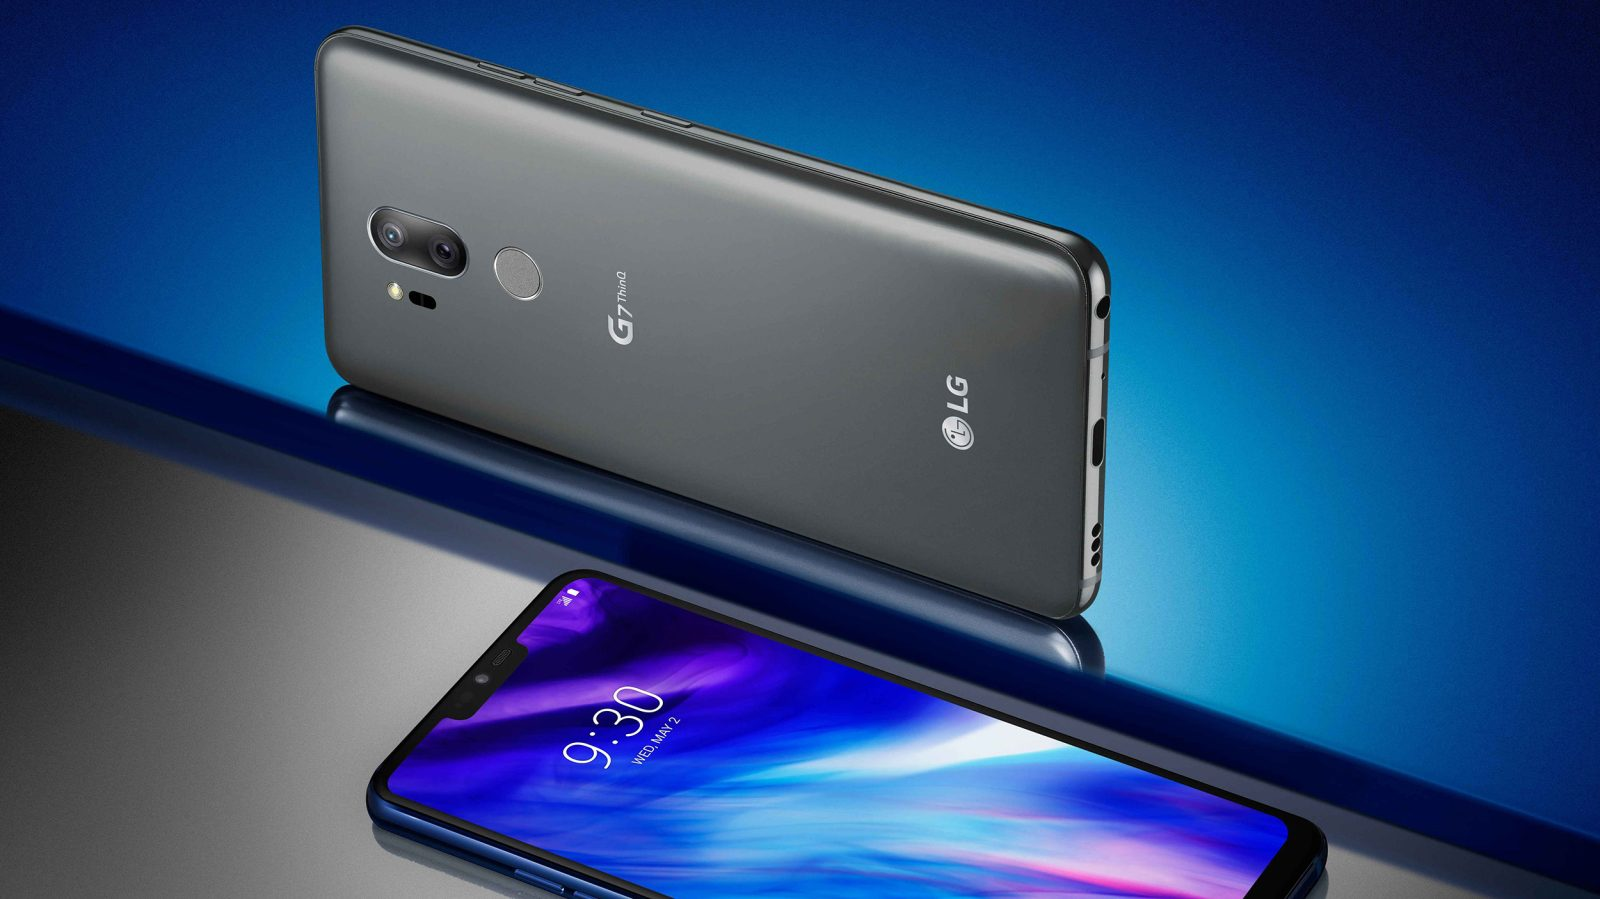 LG G7 ThinQ kicks off 2019 w/ official Android Pie update - 9to5Google